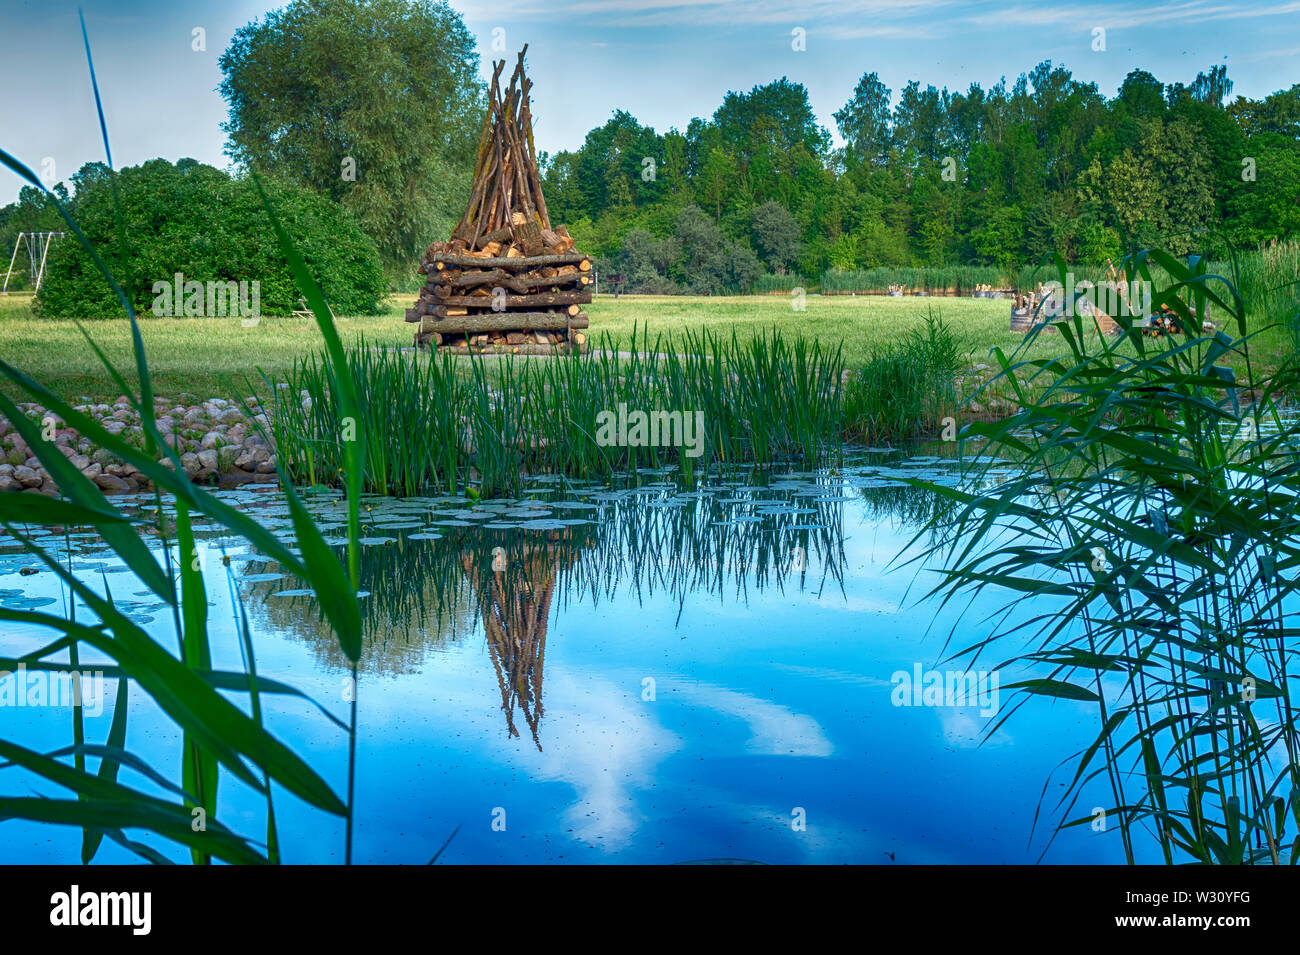 Tranquil lake with large ready built bonfire on the further shore waiting to be lit in the evening for a celebration or party - Stock Image